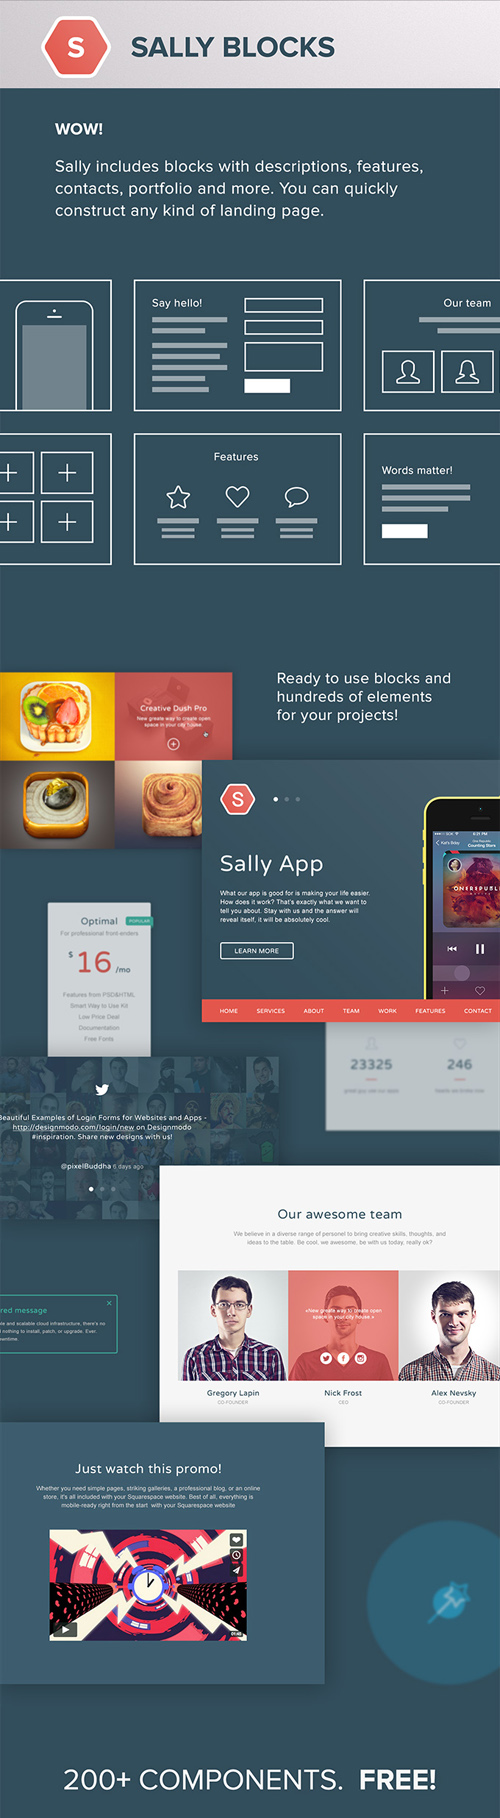 Sally Blocks UI Elements